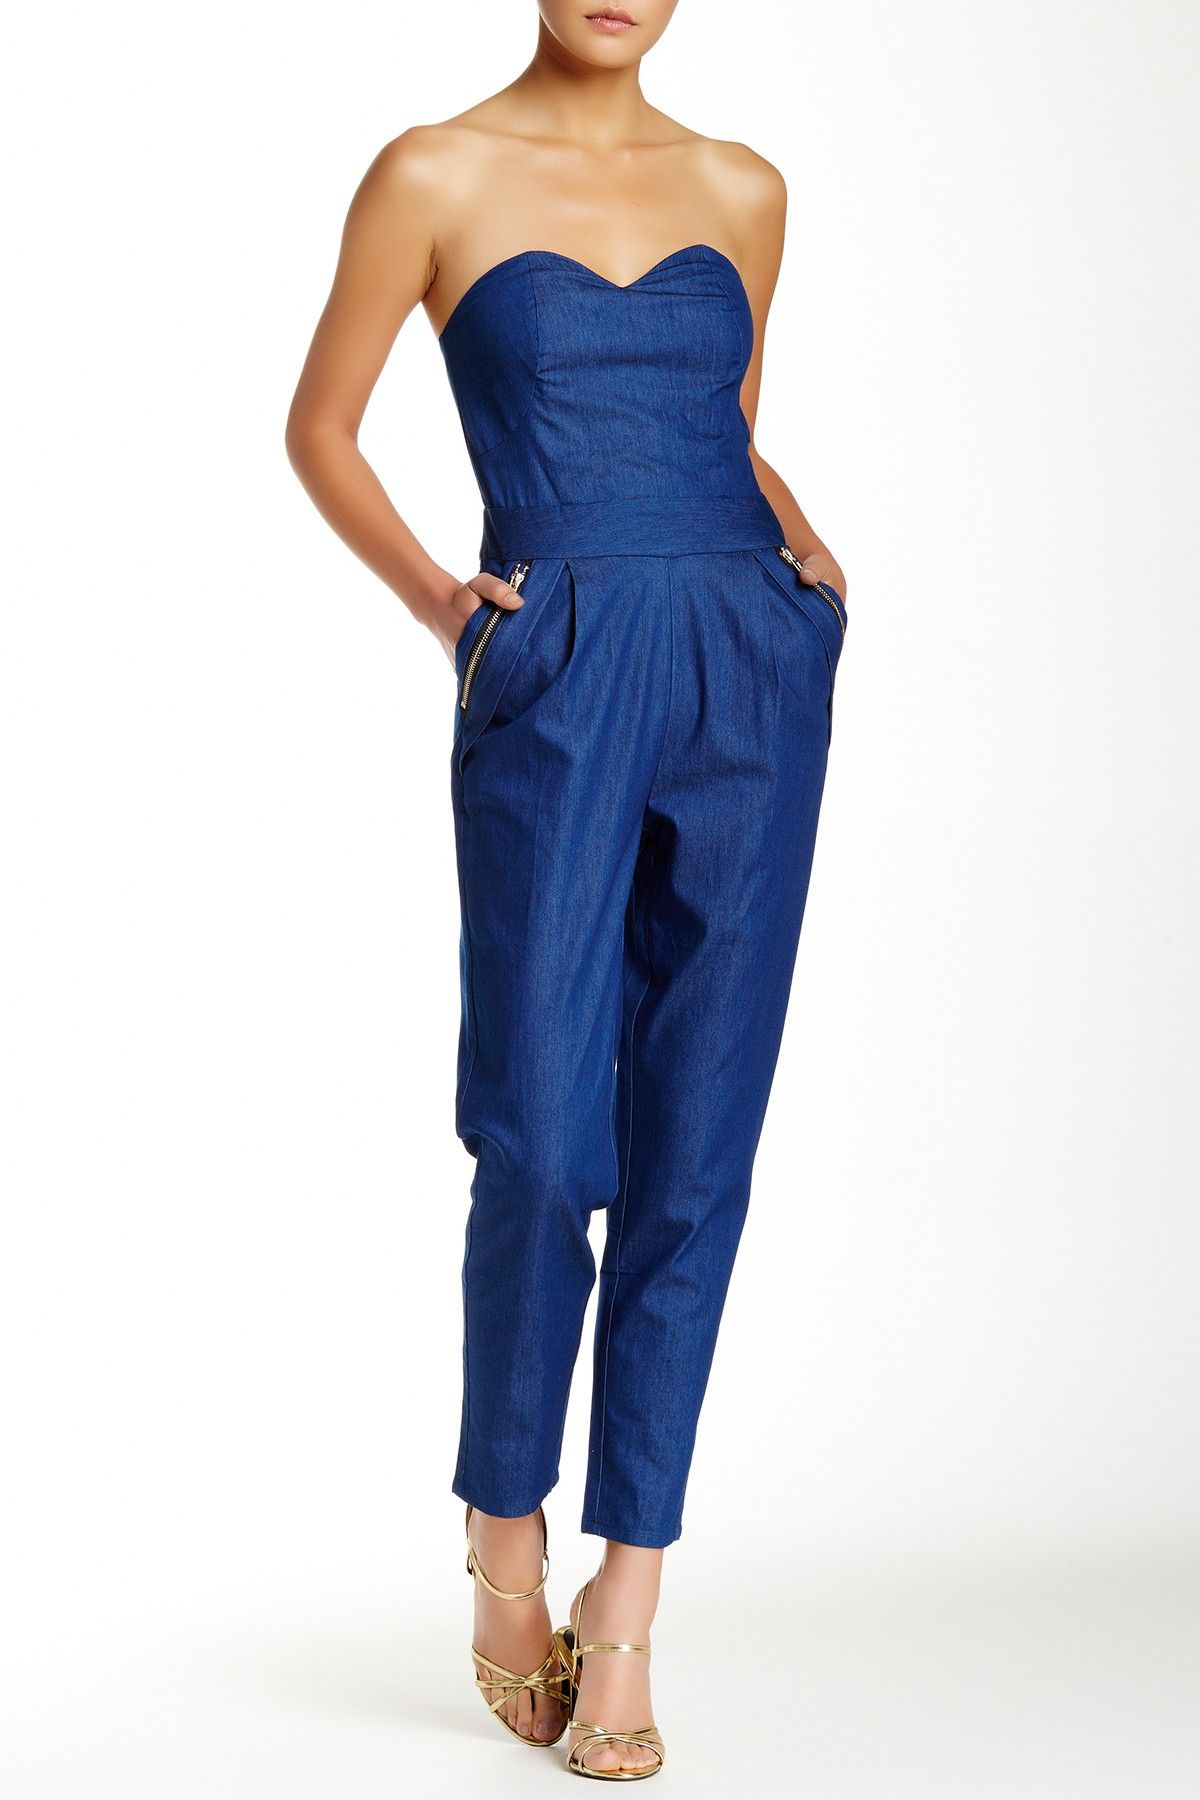 Gracia Denim Strapless Jumpsuit My style haves, want